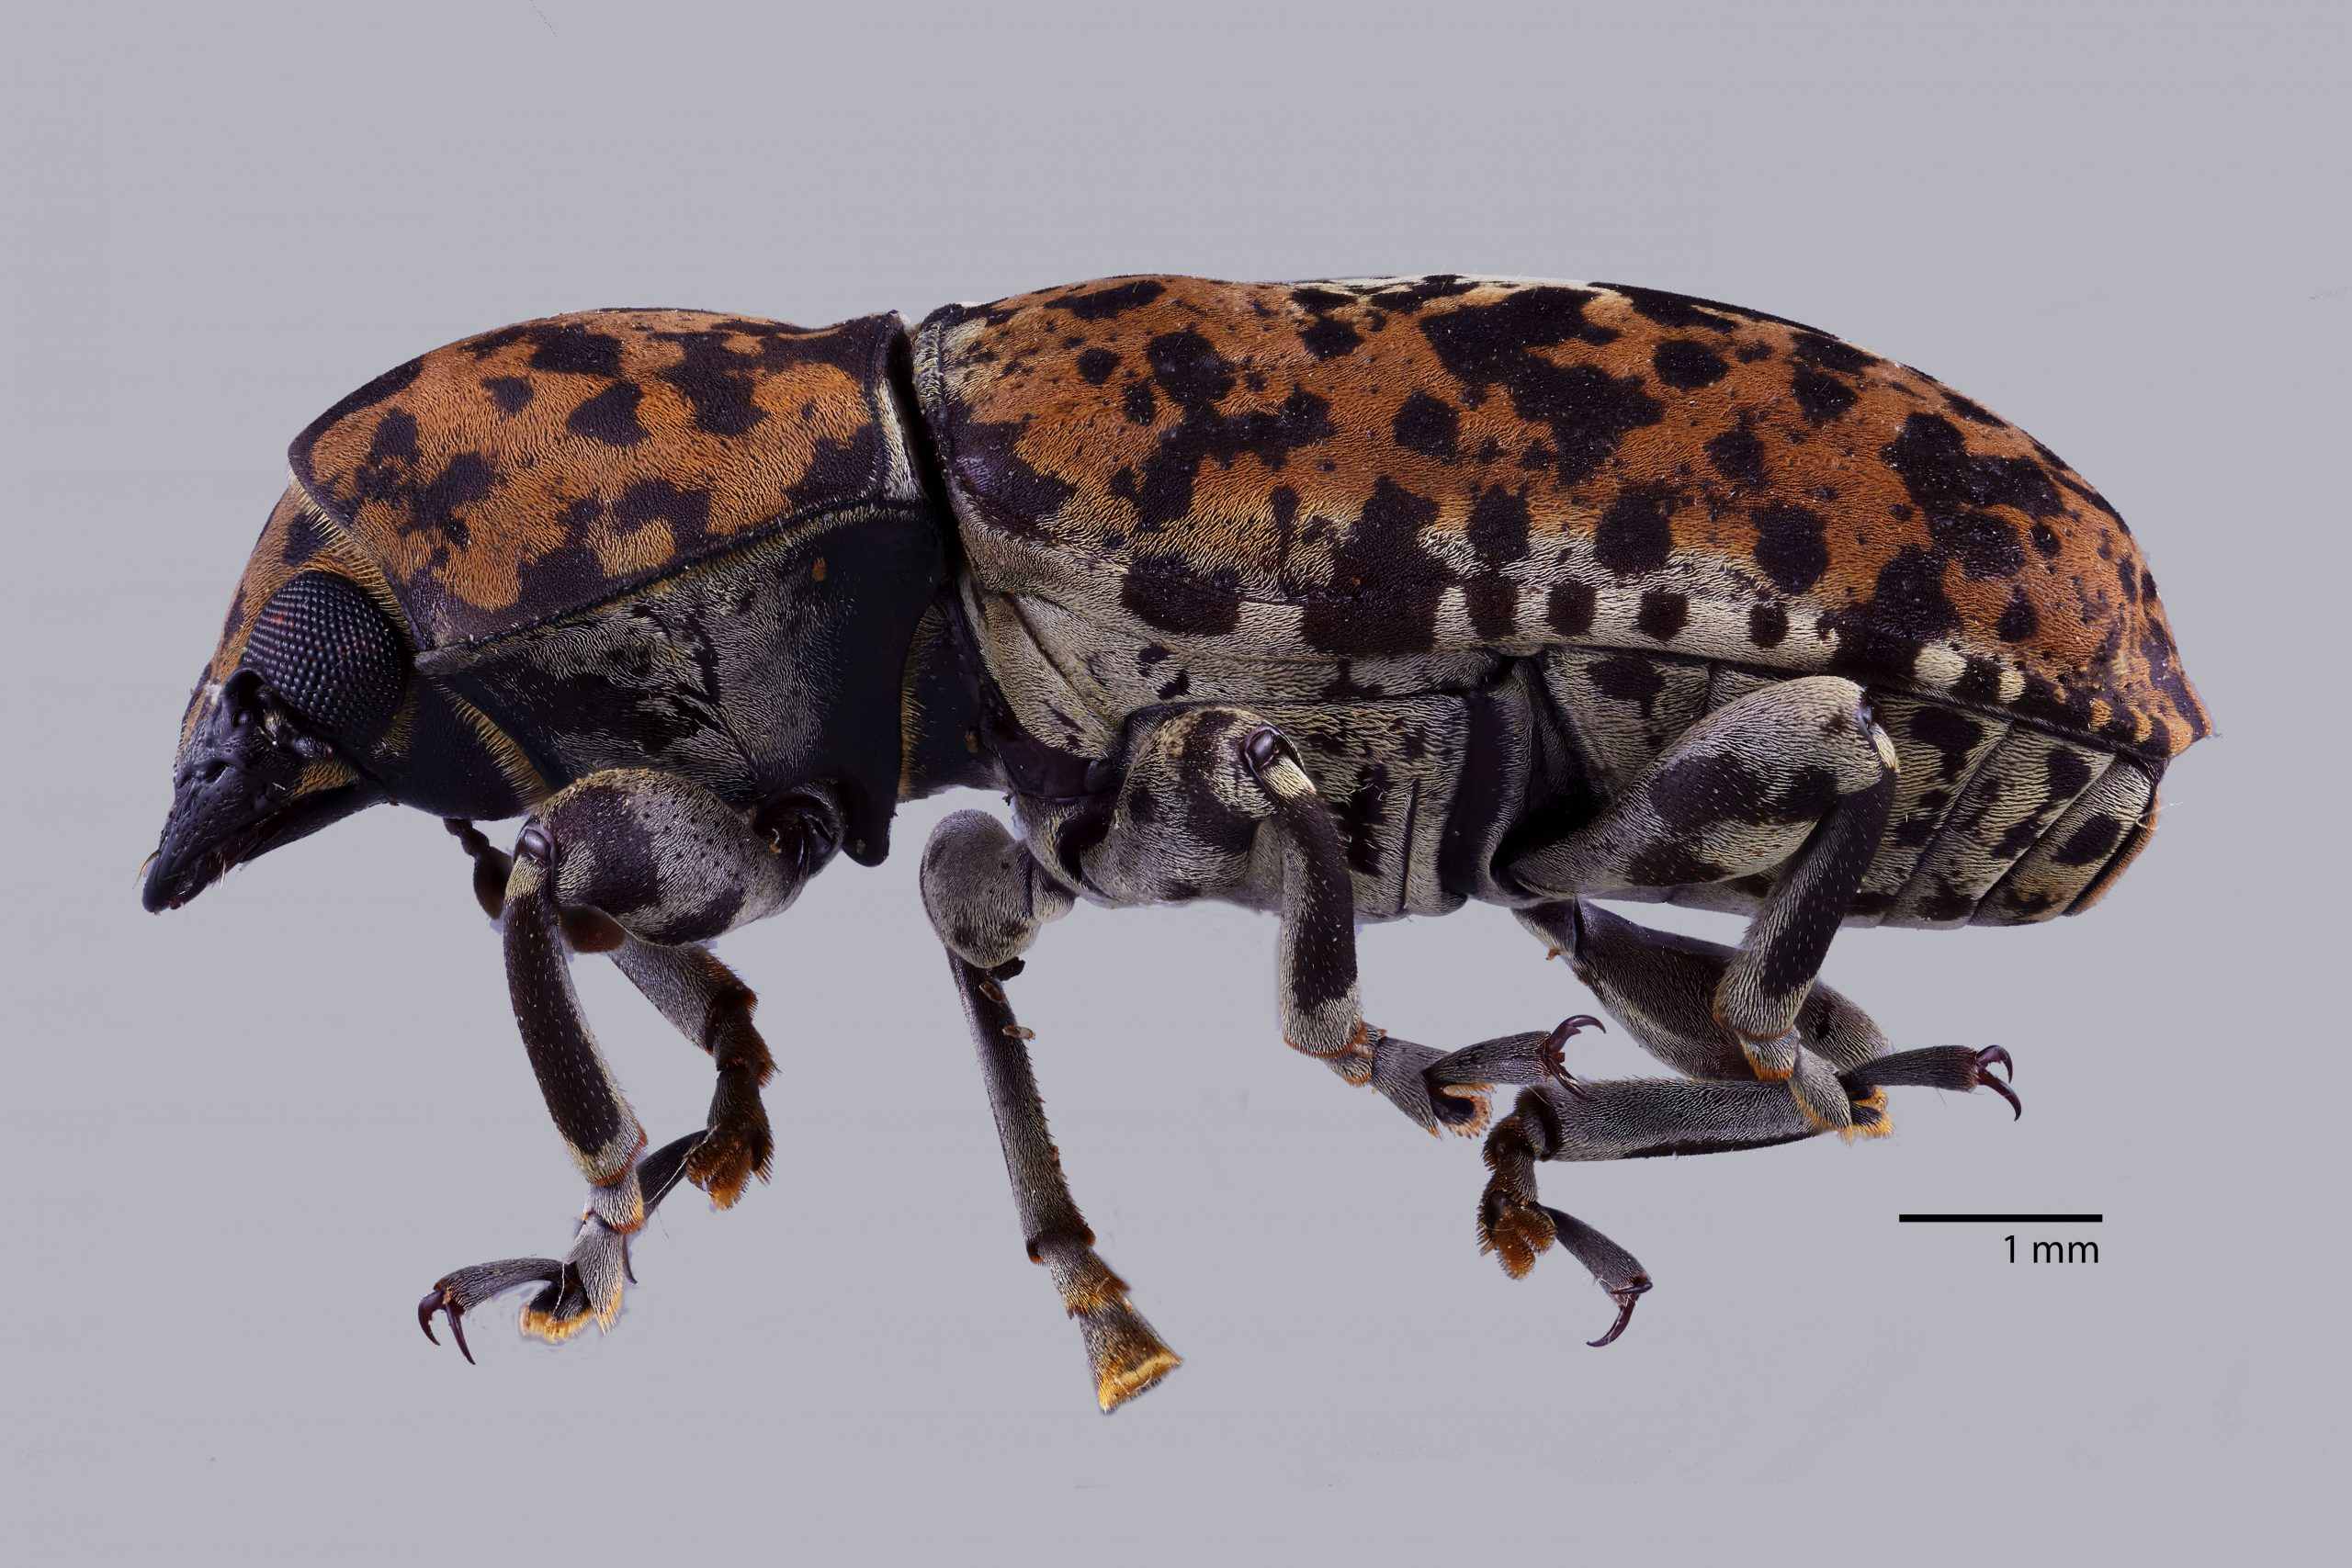 A weevil with orange body and black spots.